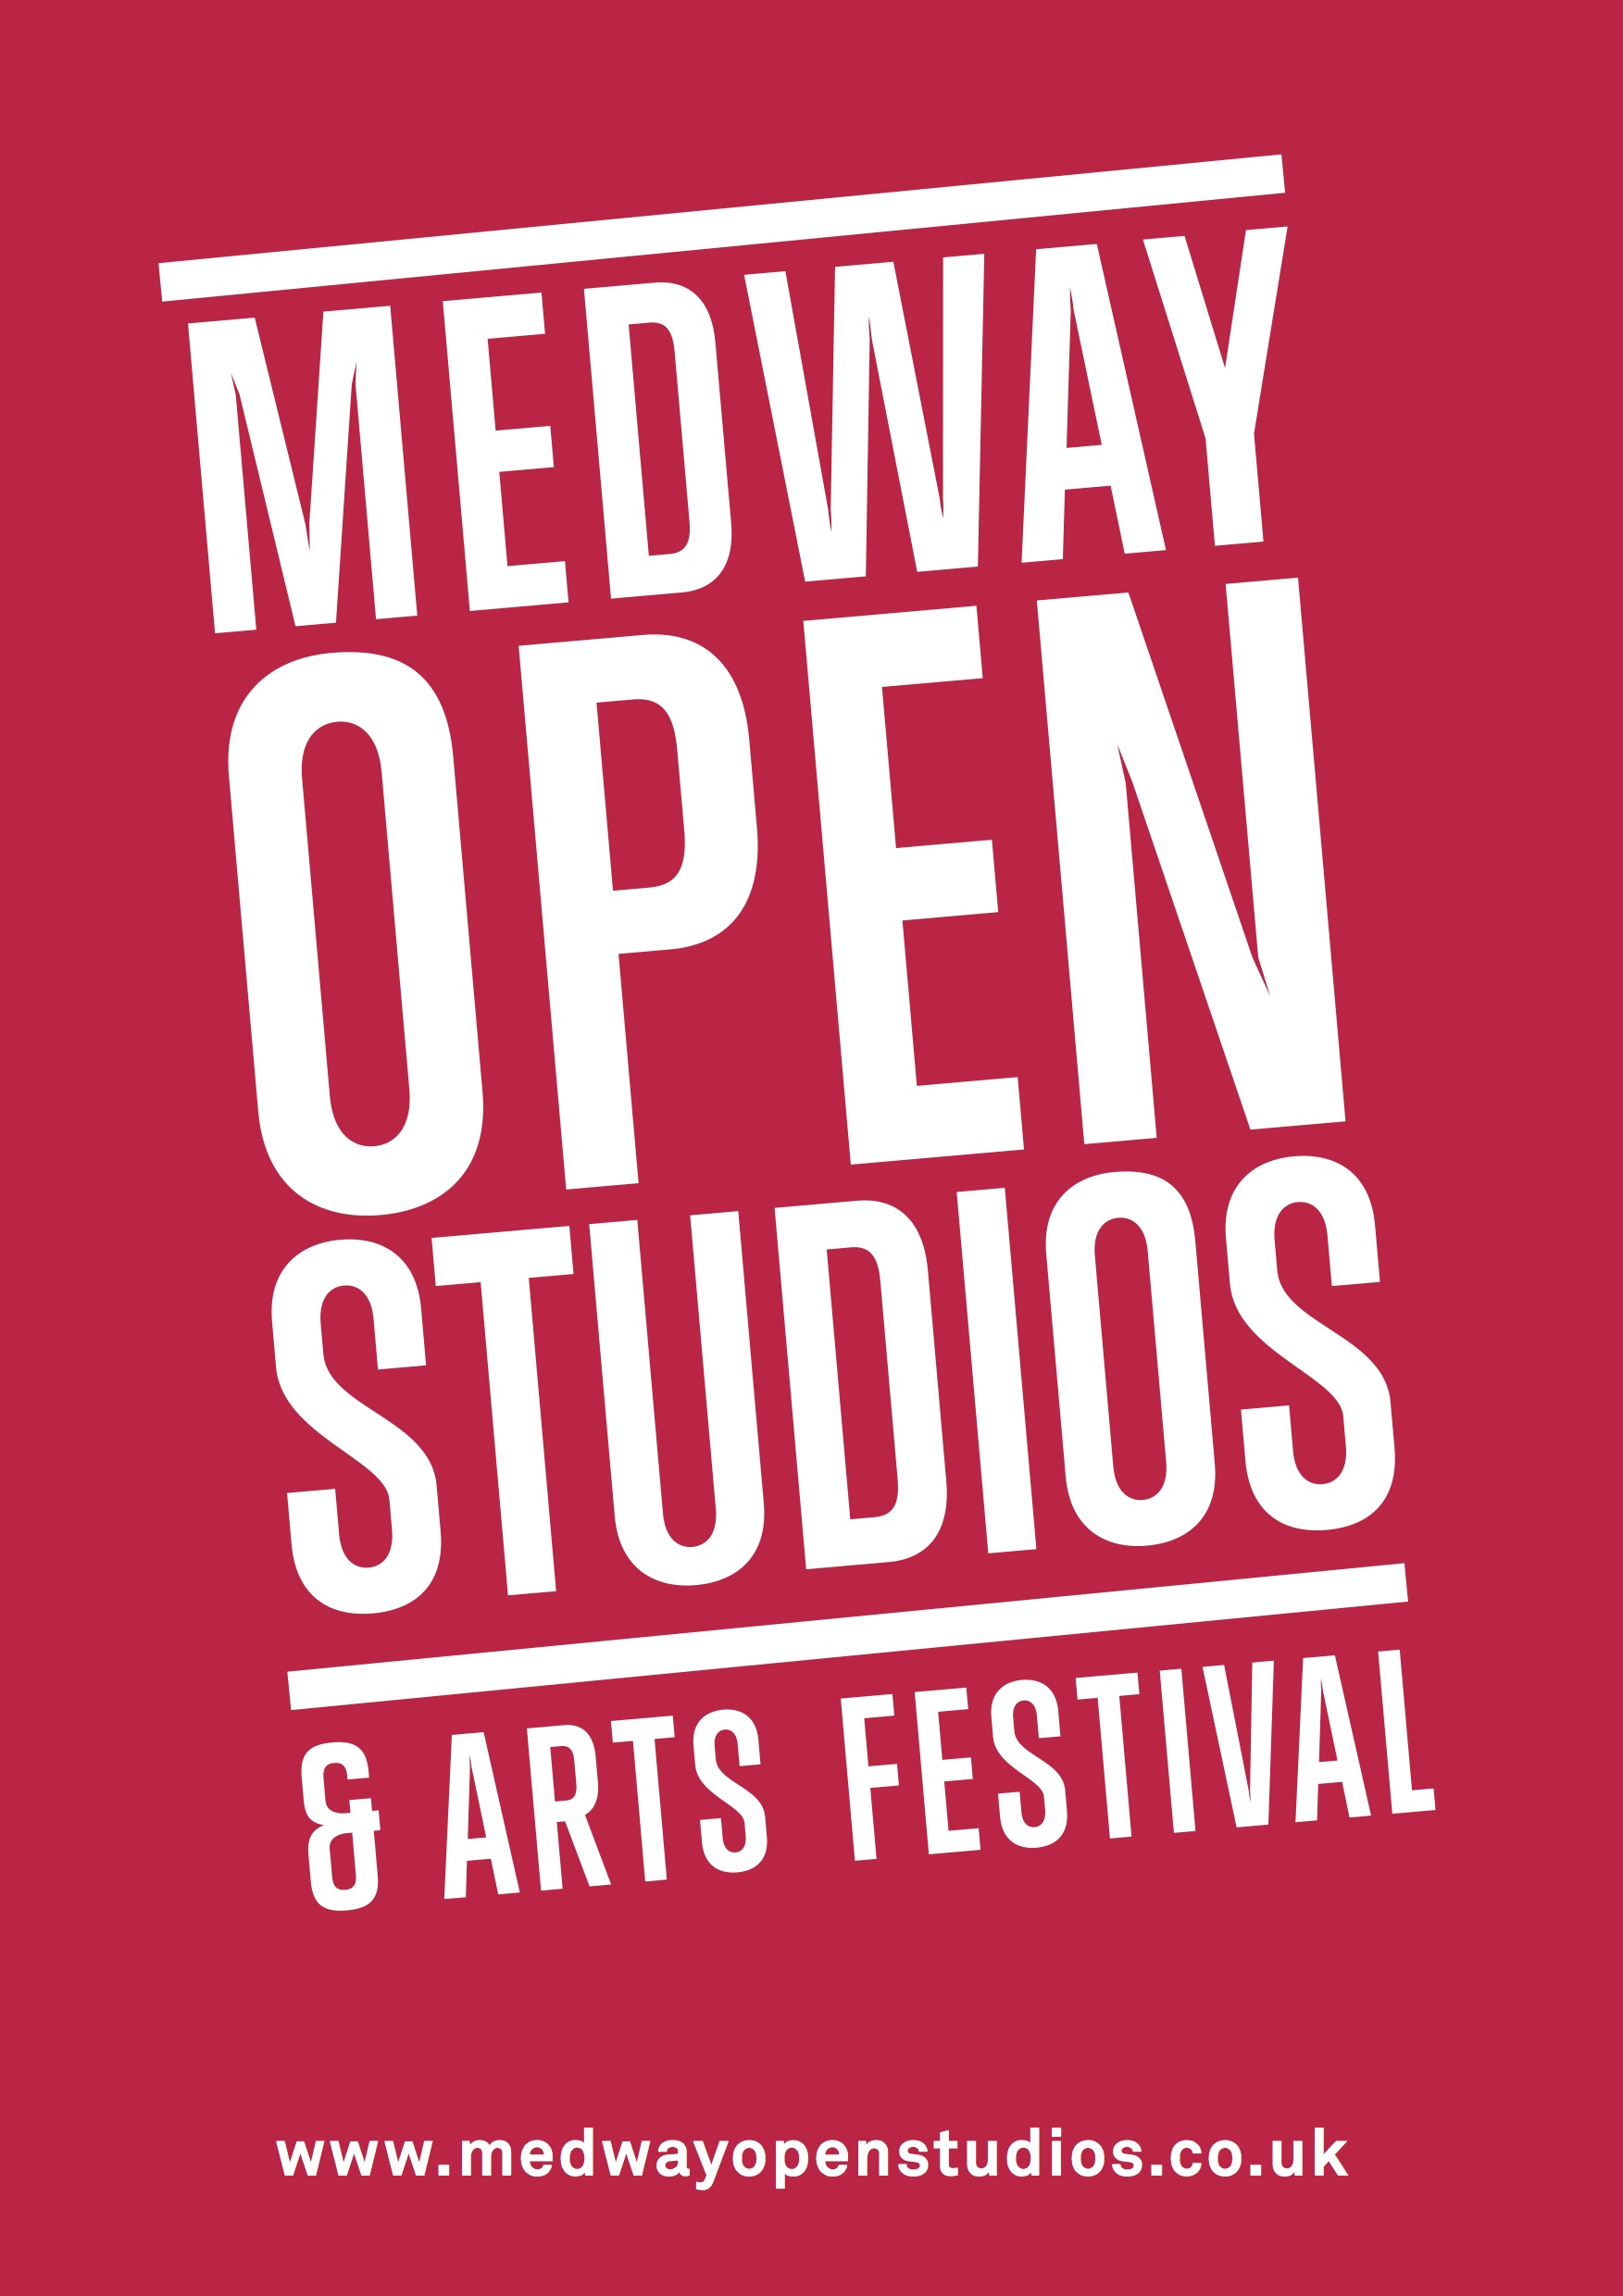 Medway Opens poster_No Dates.jpg